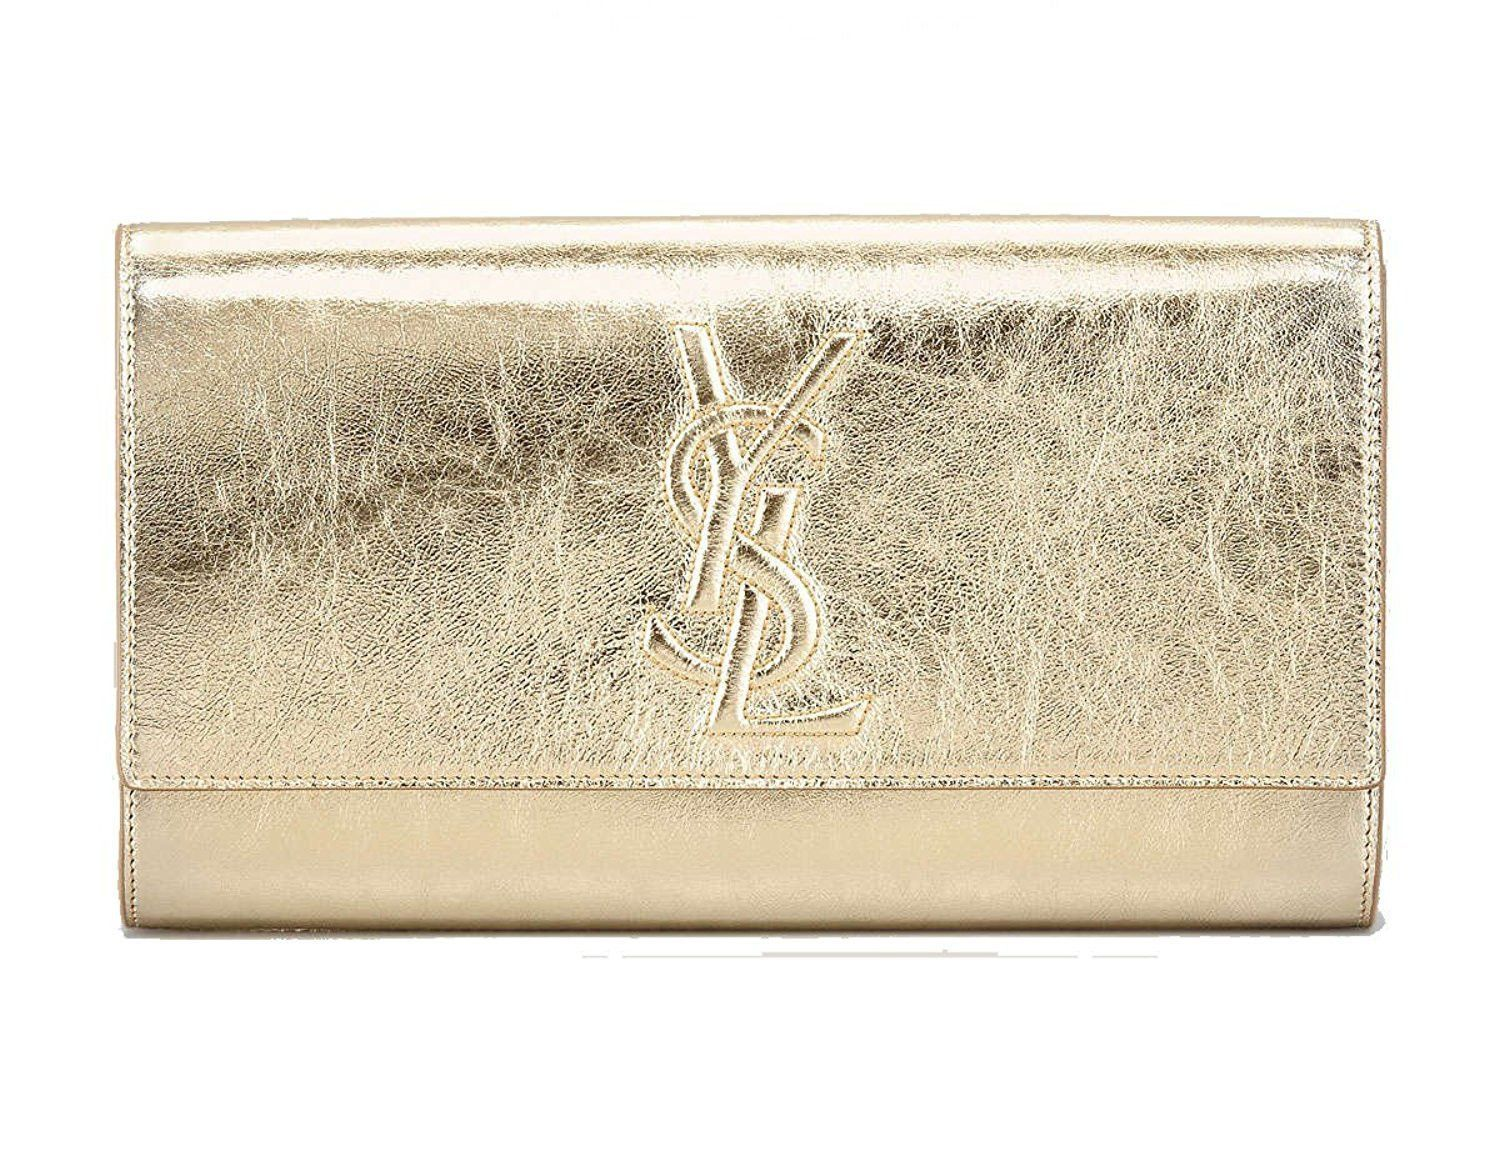 Yves Saint Laurent YSL Sac Belle du Jour Gold Metallic Leather Evening Bag  Clutch 361120 2cecea20398c4